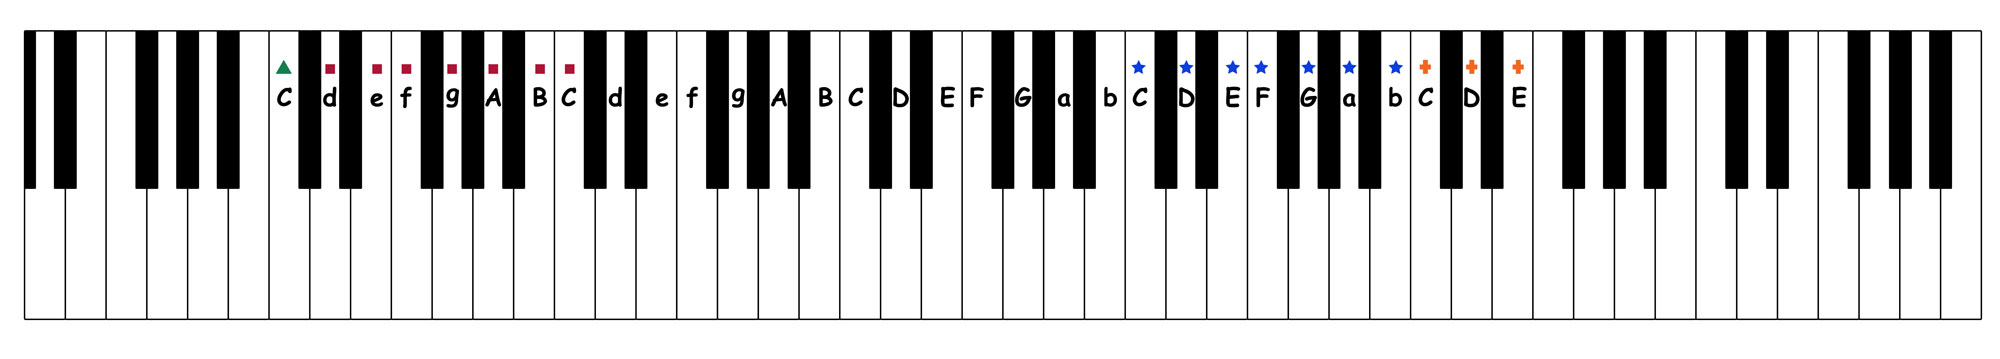 book 6 low c high e - occupational octaves piano